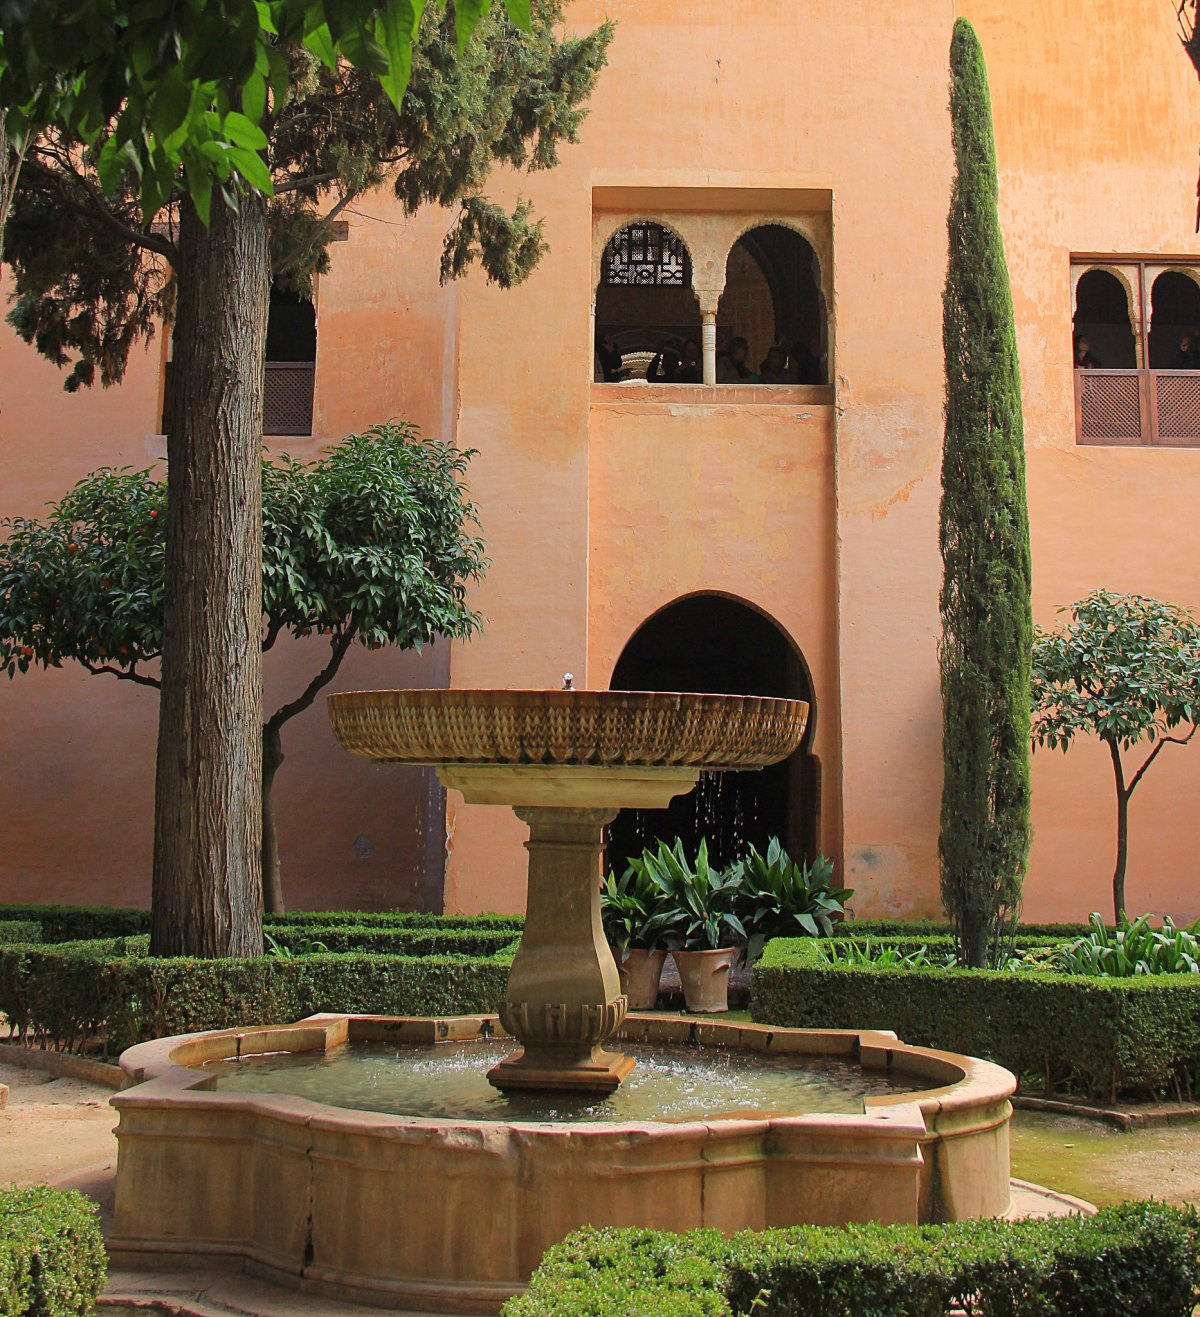 Generalife is an attraction inside the Alhambra